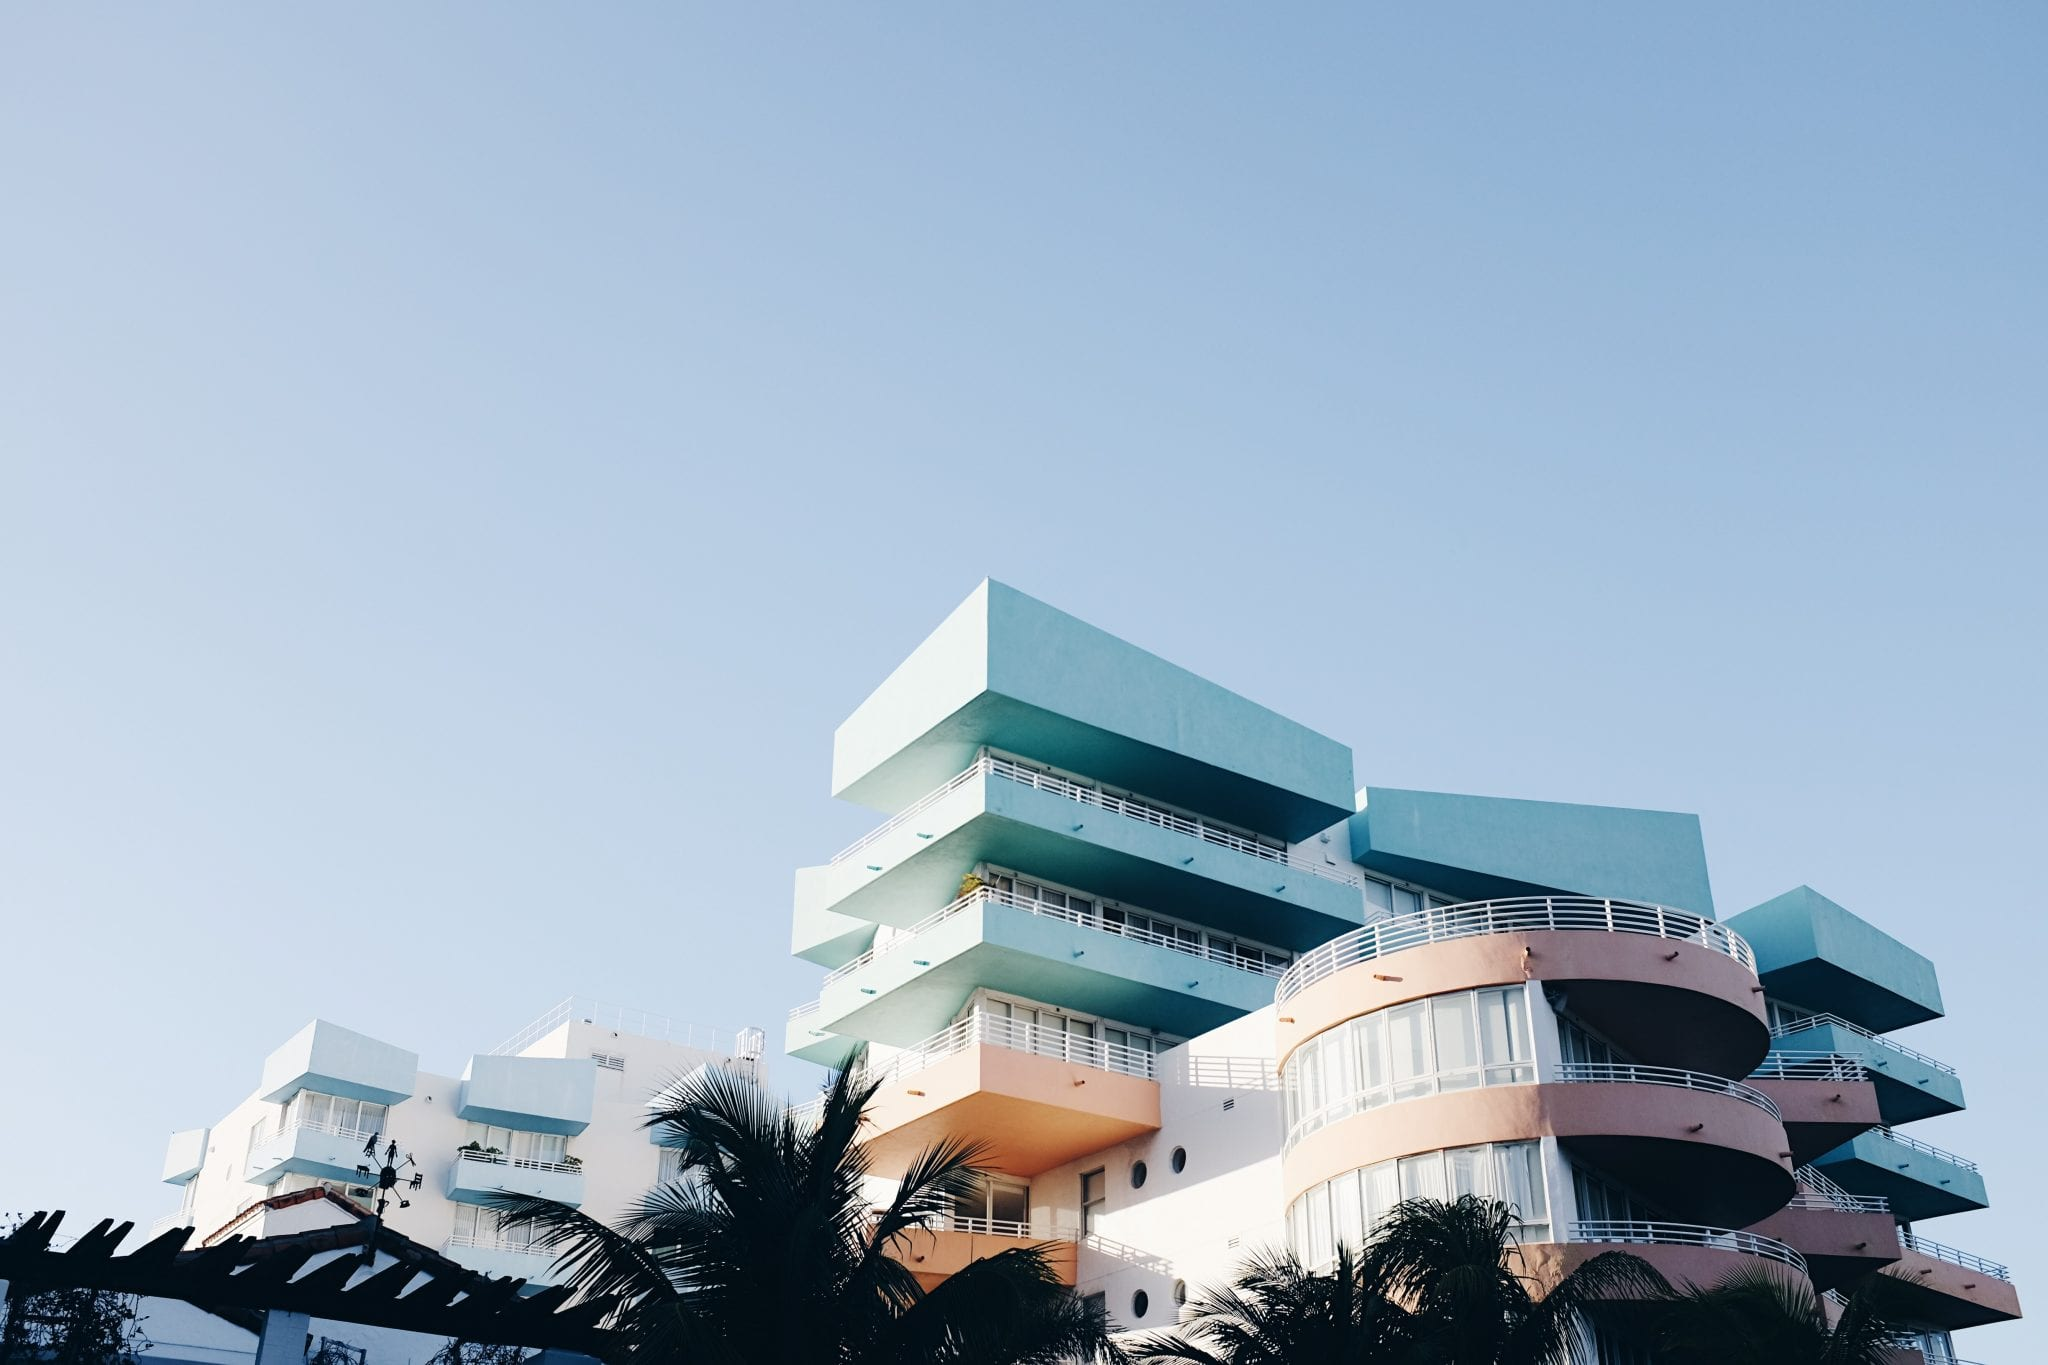 Miami Art Deco Architecture Adventures to Explore Around Arlo